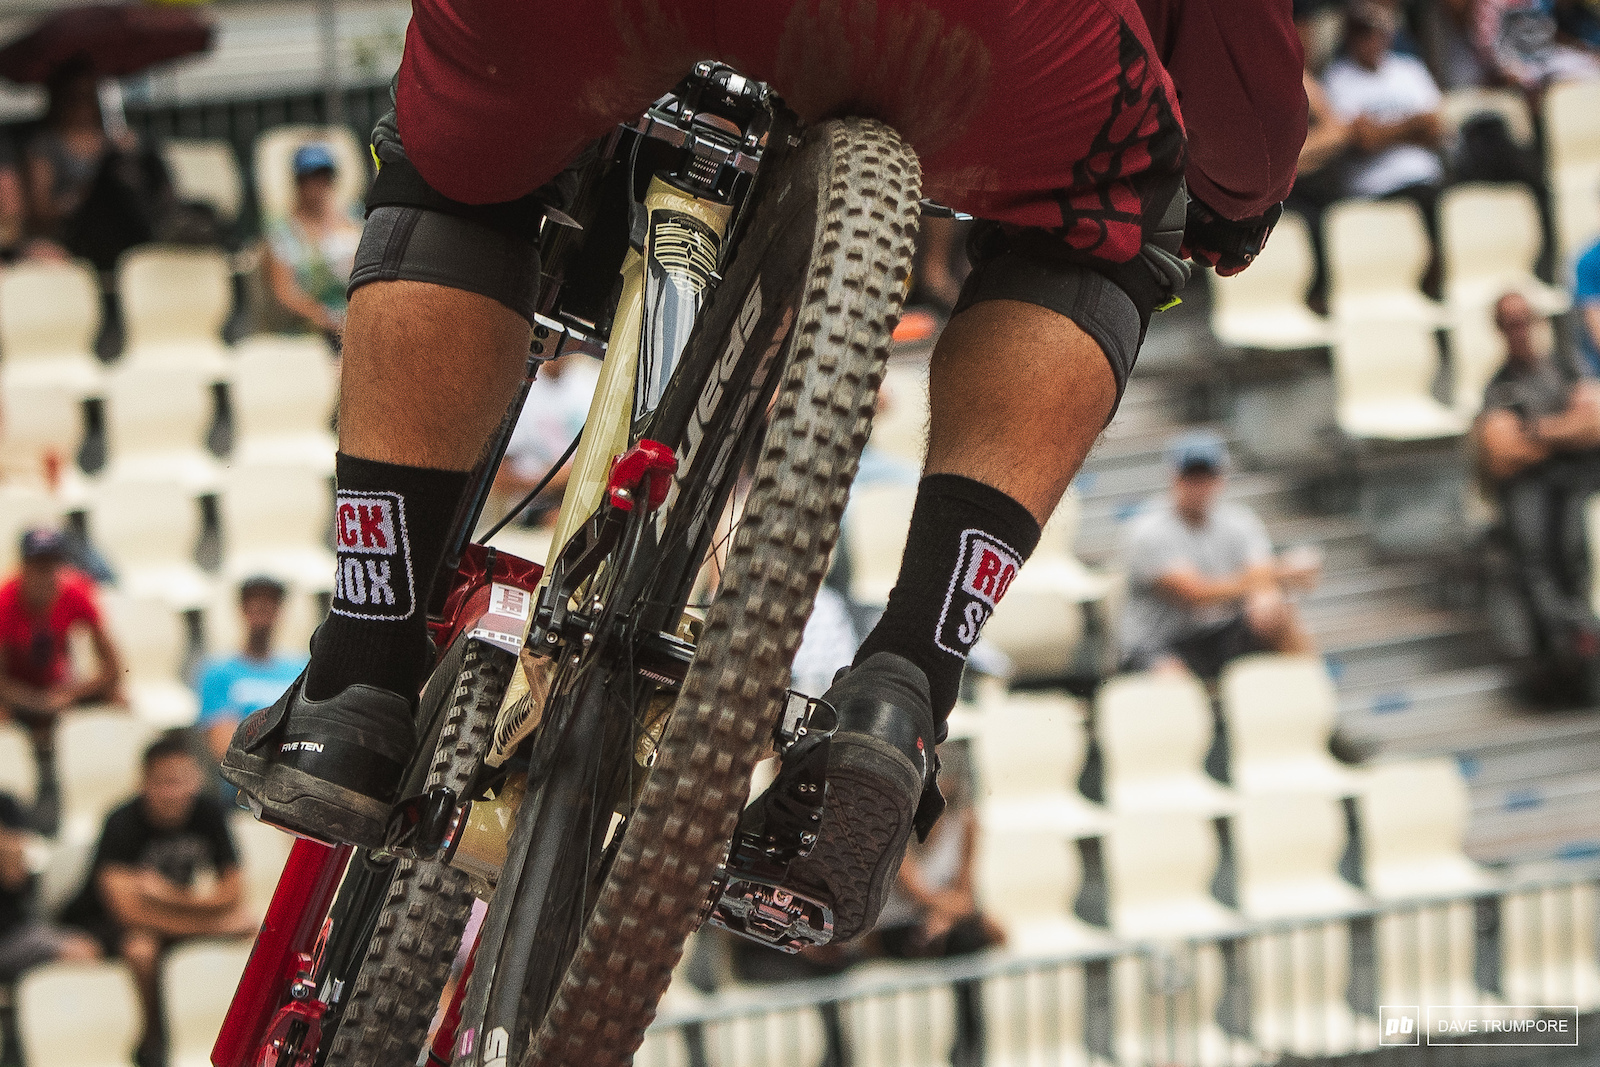 It takes every available inch of travel in the legs as well as the suspension to squash the final drop at race speed.